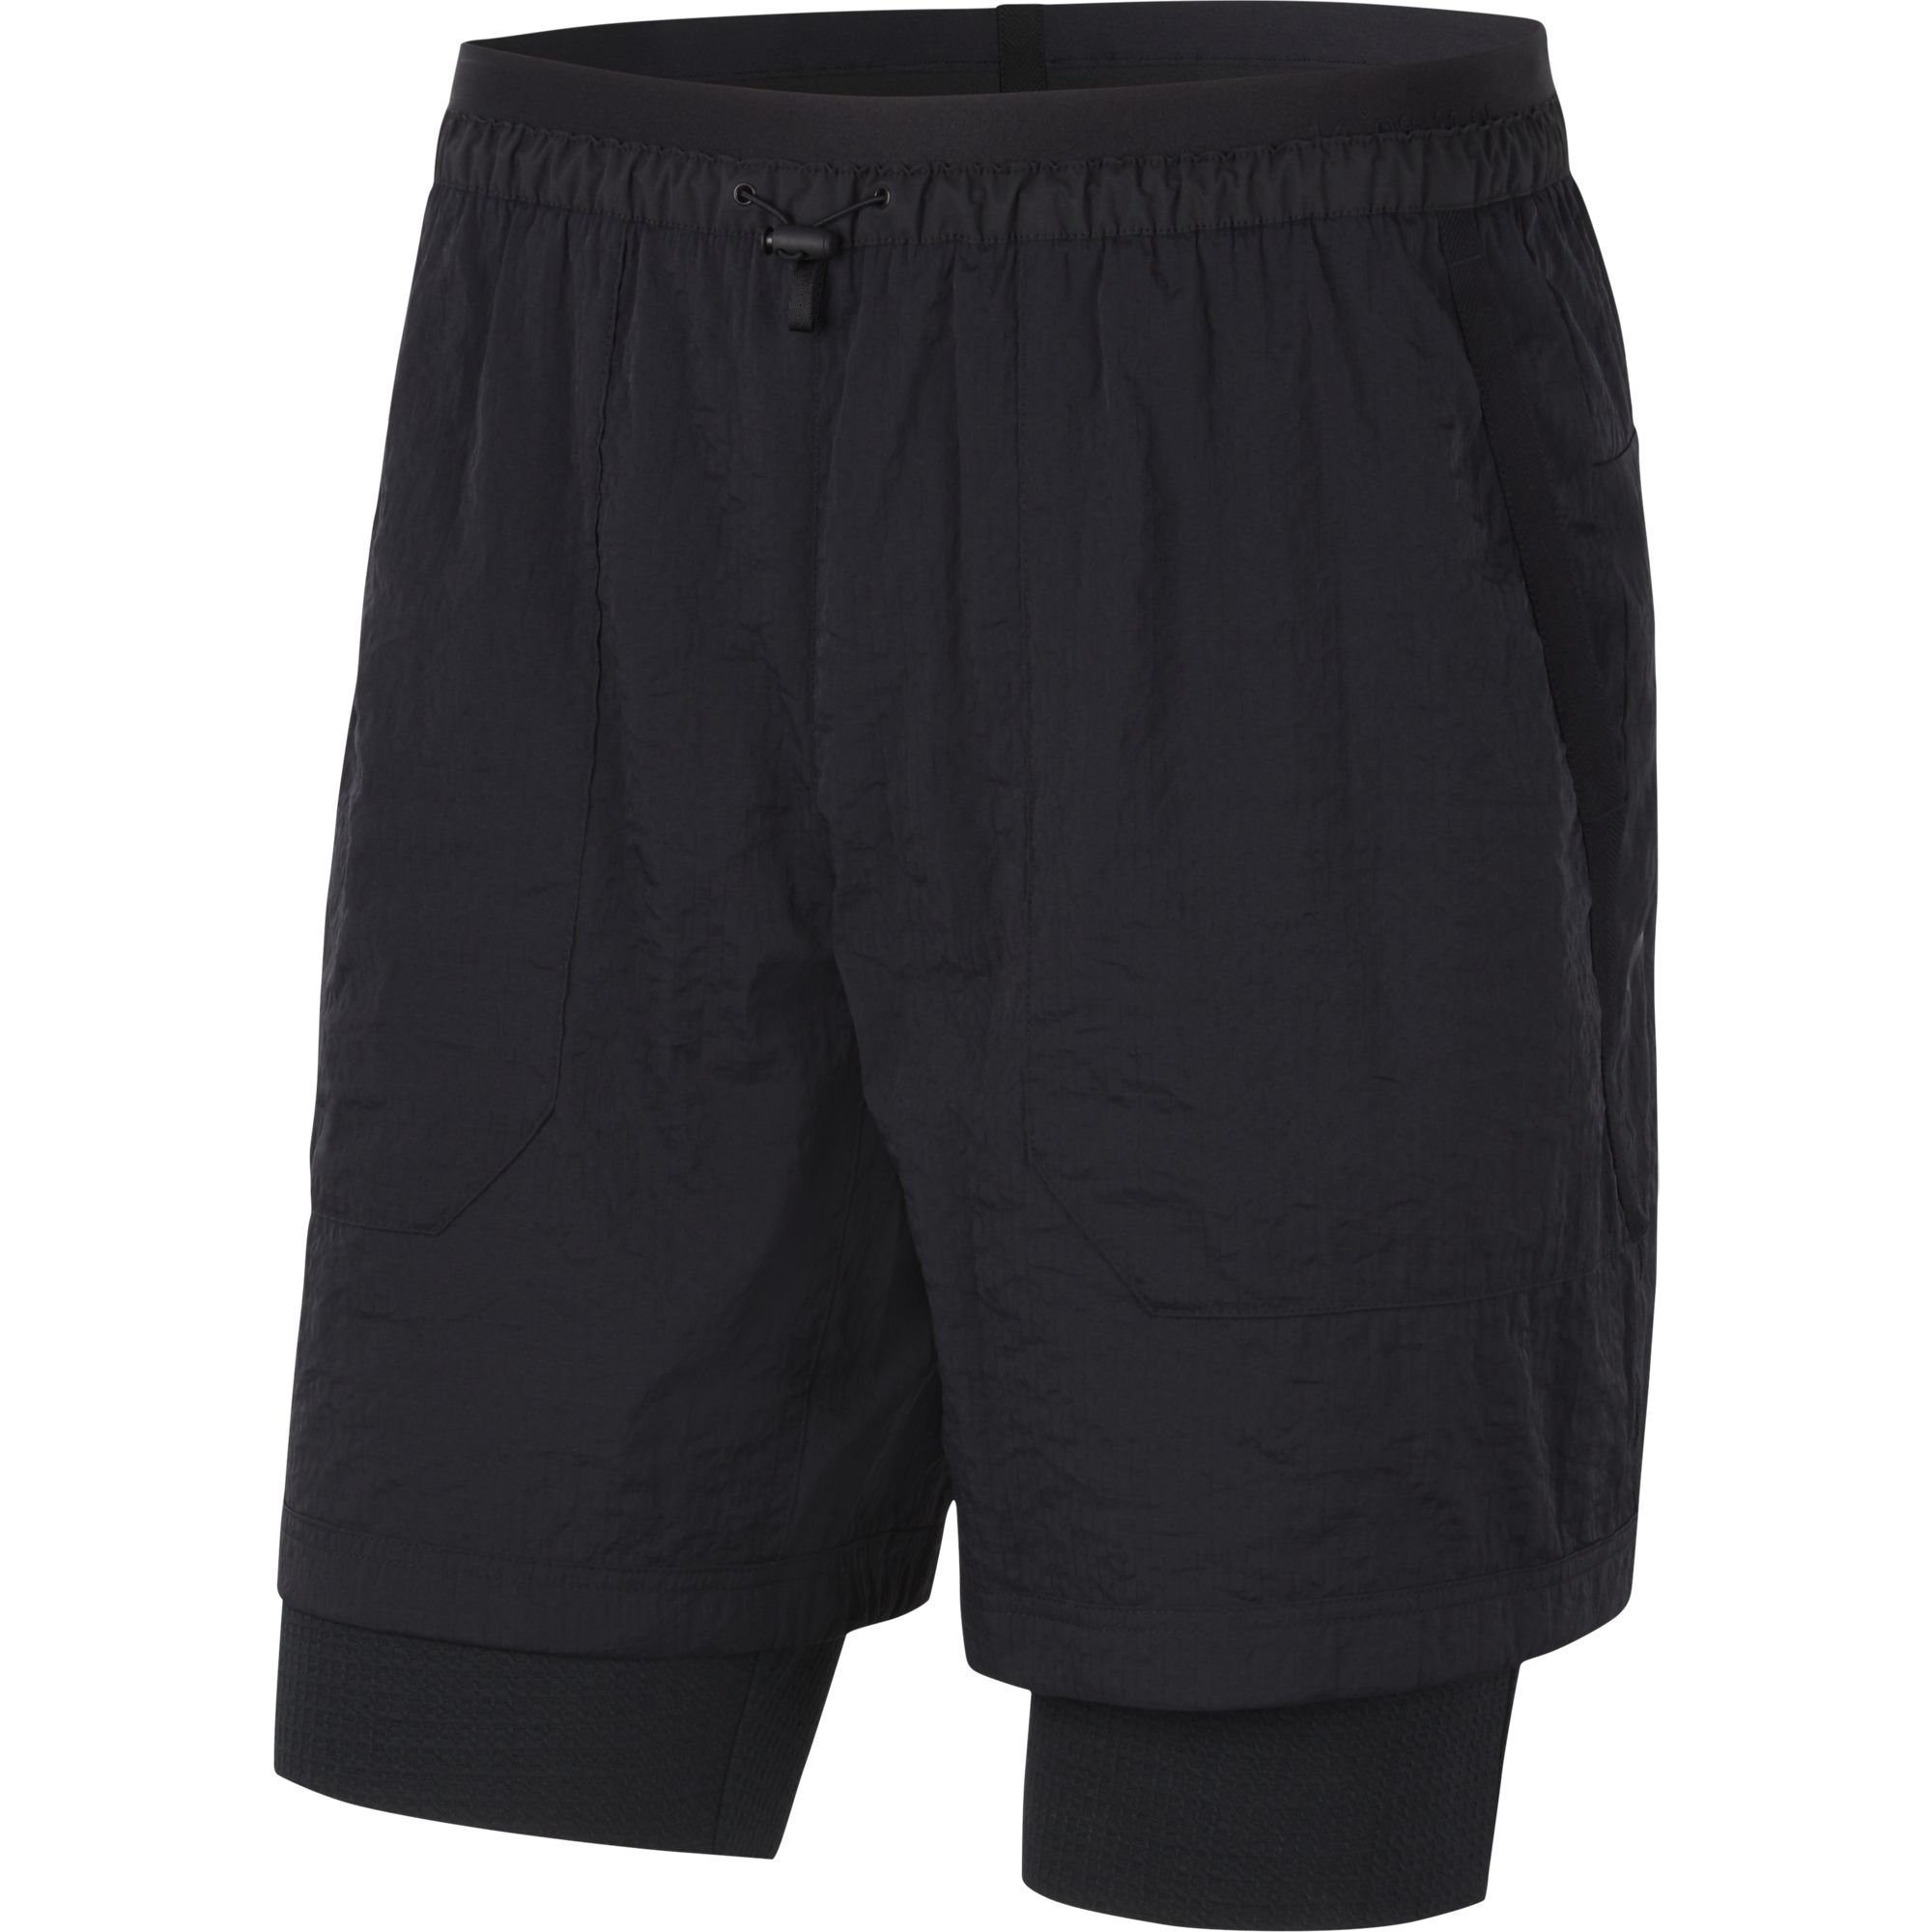 Nike sportswear short tech pack black